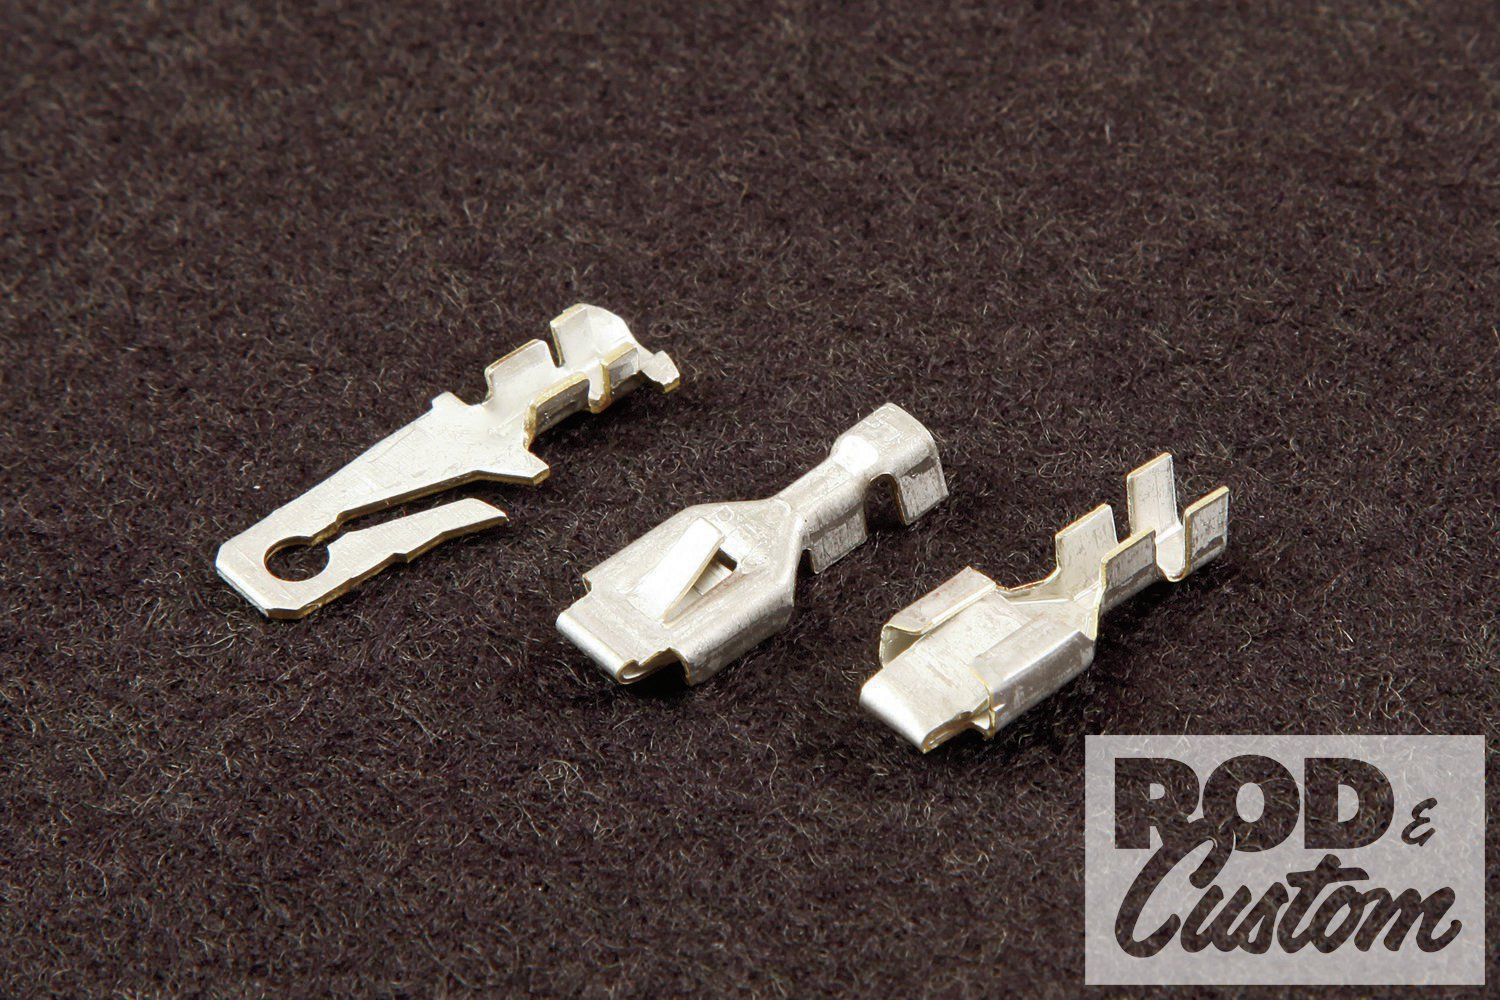 2. The female Packard 56 connector resembles a plain push-on terminal. The foreground terminal shows how it folds in on itself to maintain contact with the male terminal. The middle terminal shows the tang that locks it into its connector. The background terminal is the male.